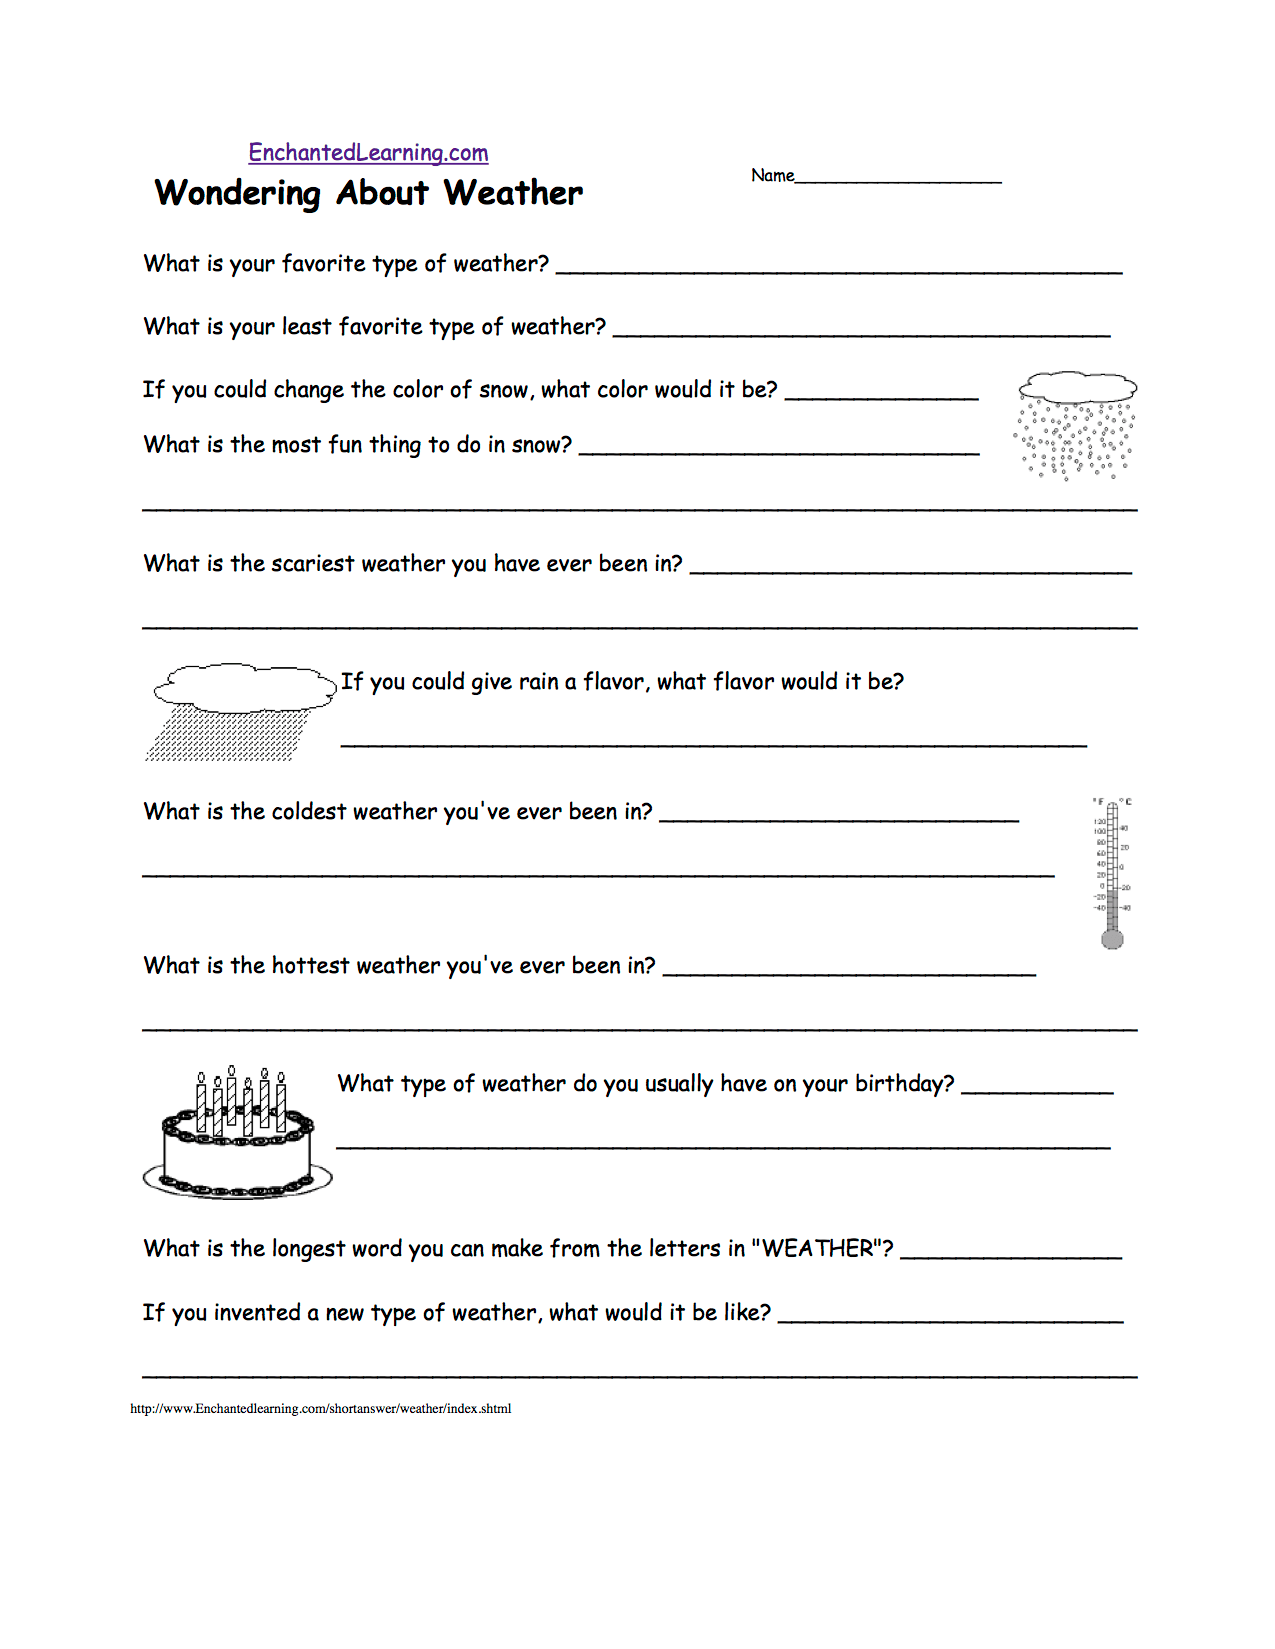 Weather Related Writing Activities At Enchantedlearning